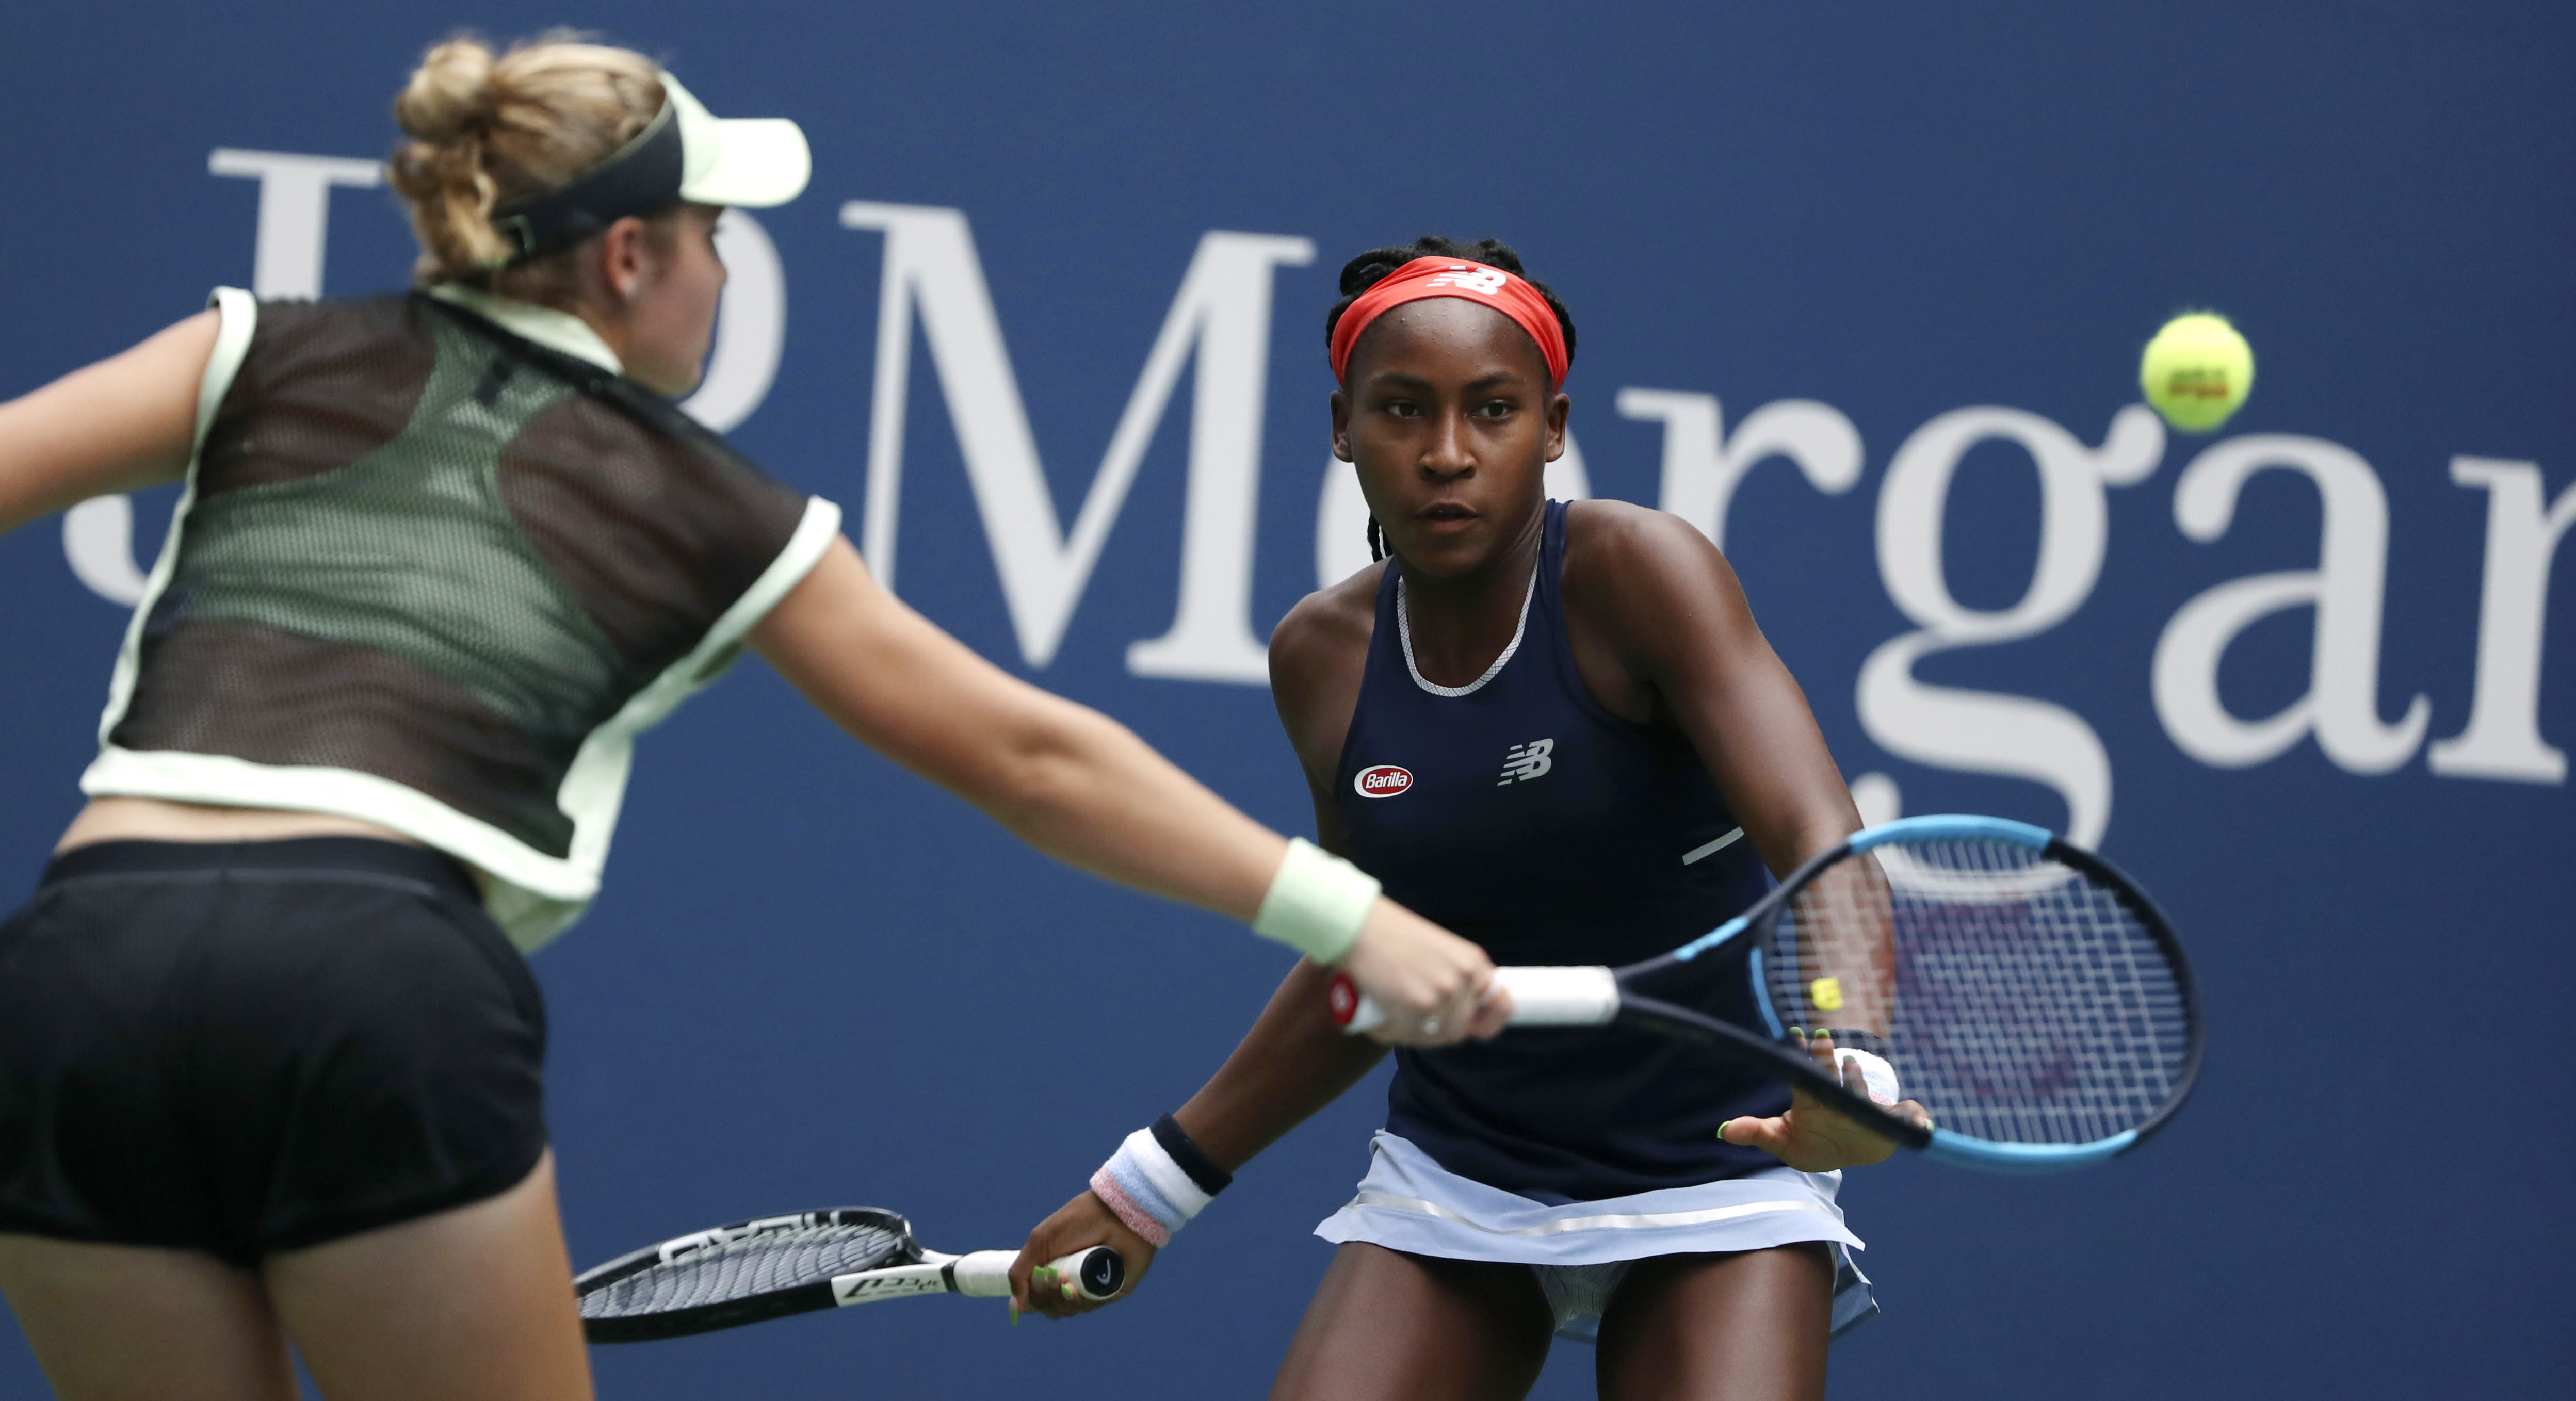 Coco Gauff, right, watches as her partner Catherine McNally returns during their women's doubles second round match against Nicole Melichar and Kveta Peschjka at the US Open tennis championships Sunday, Sept. 1, 2019, in New York. (AP Photo/Kevin Hagen)